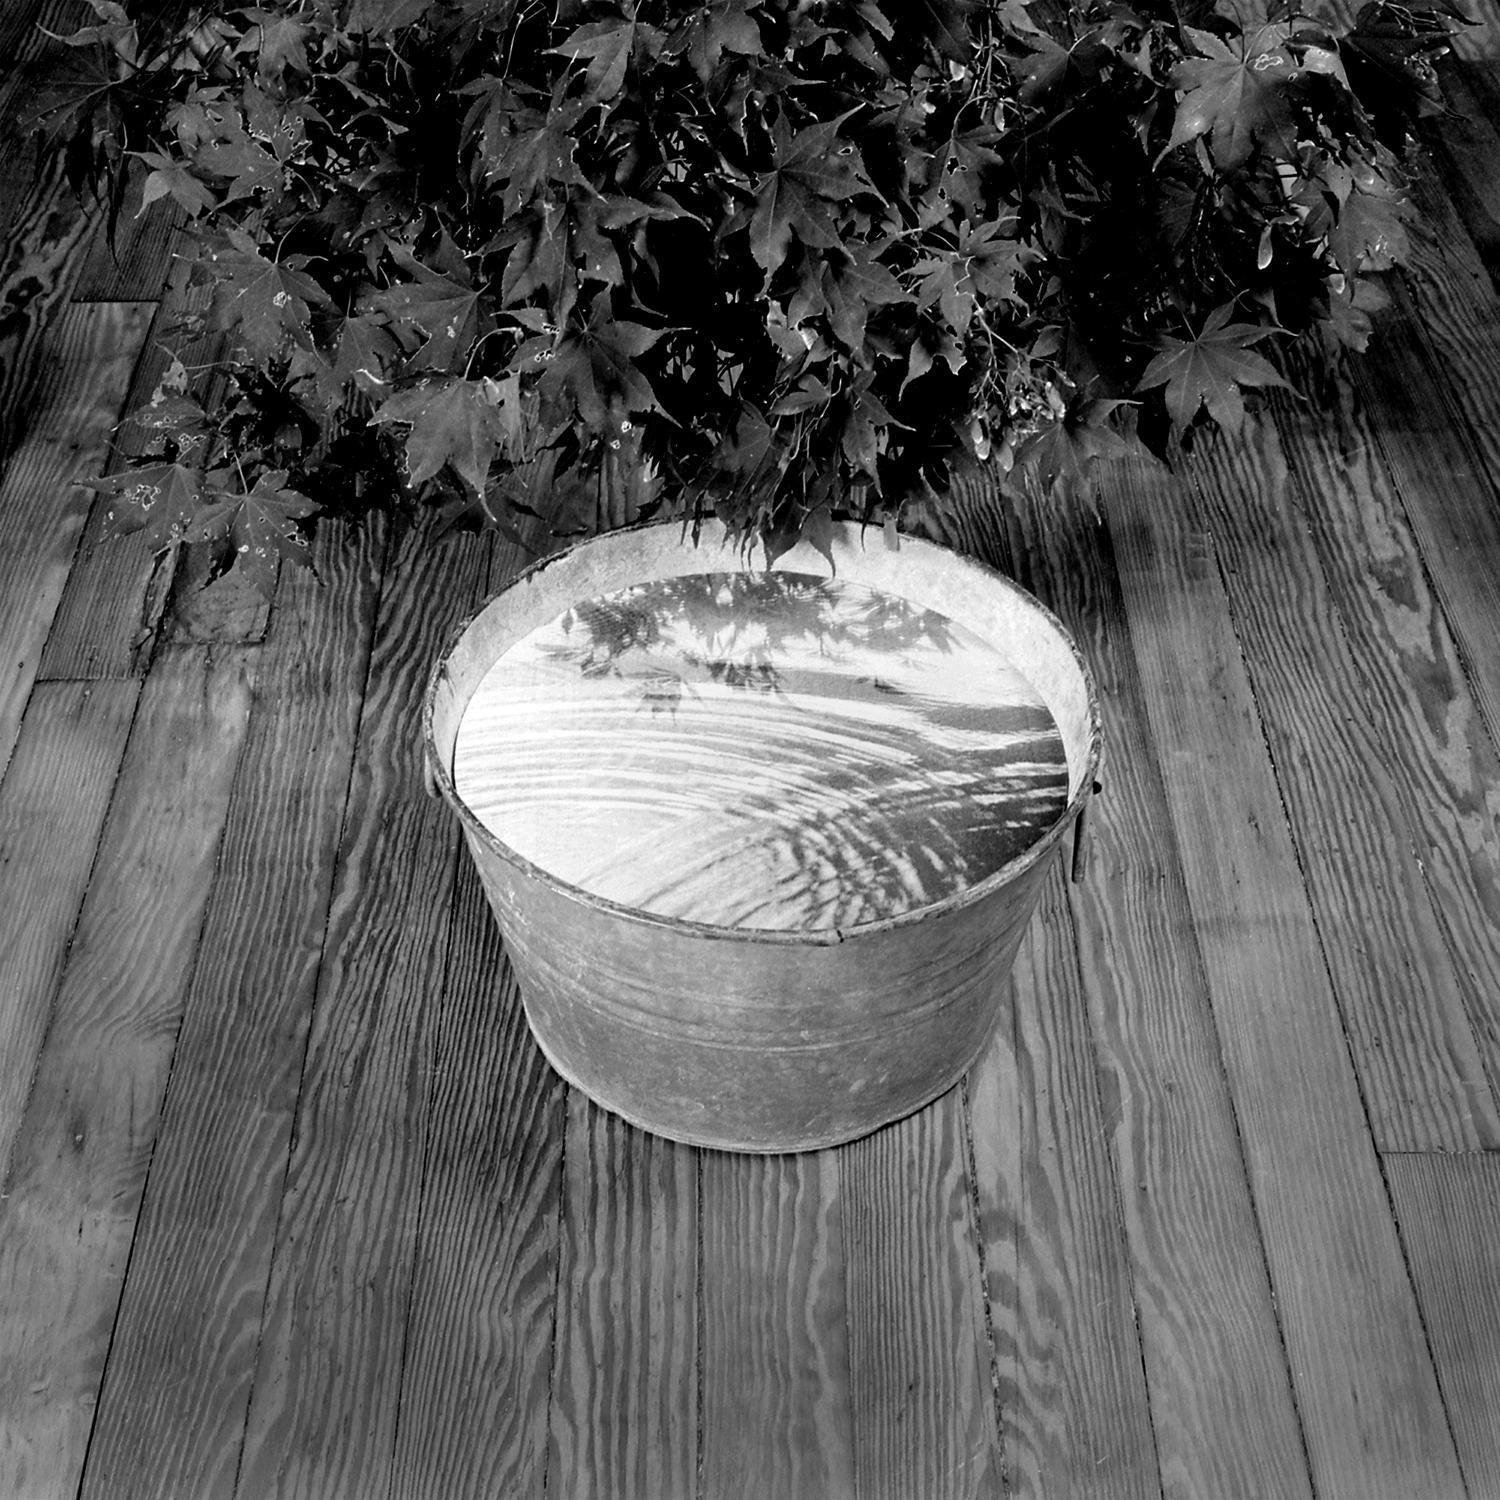 Bucket, 2005, archival pigment print on paper